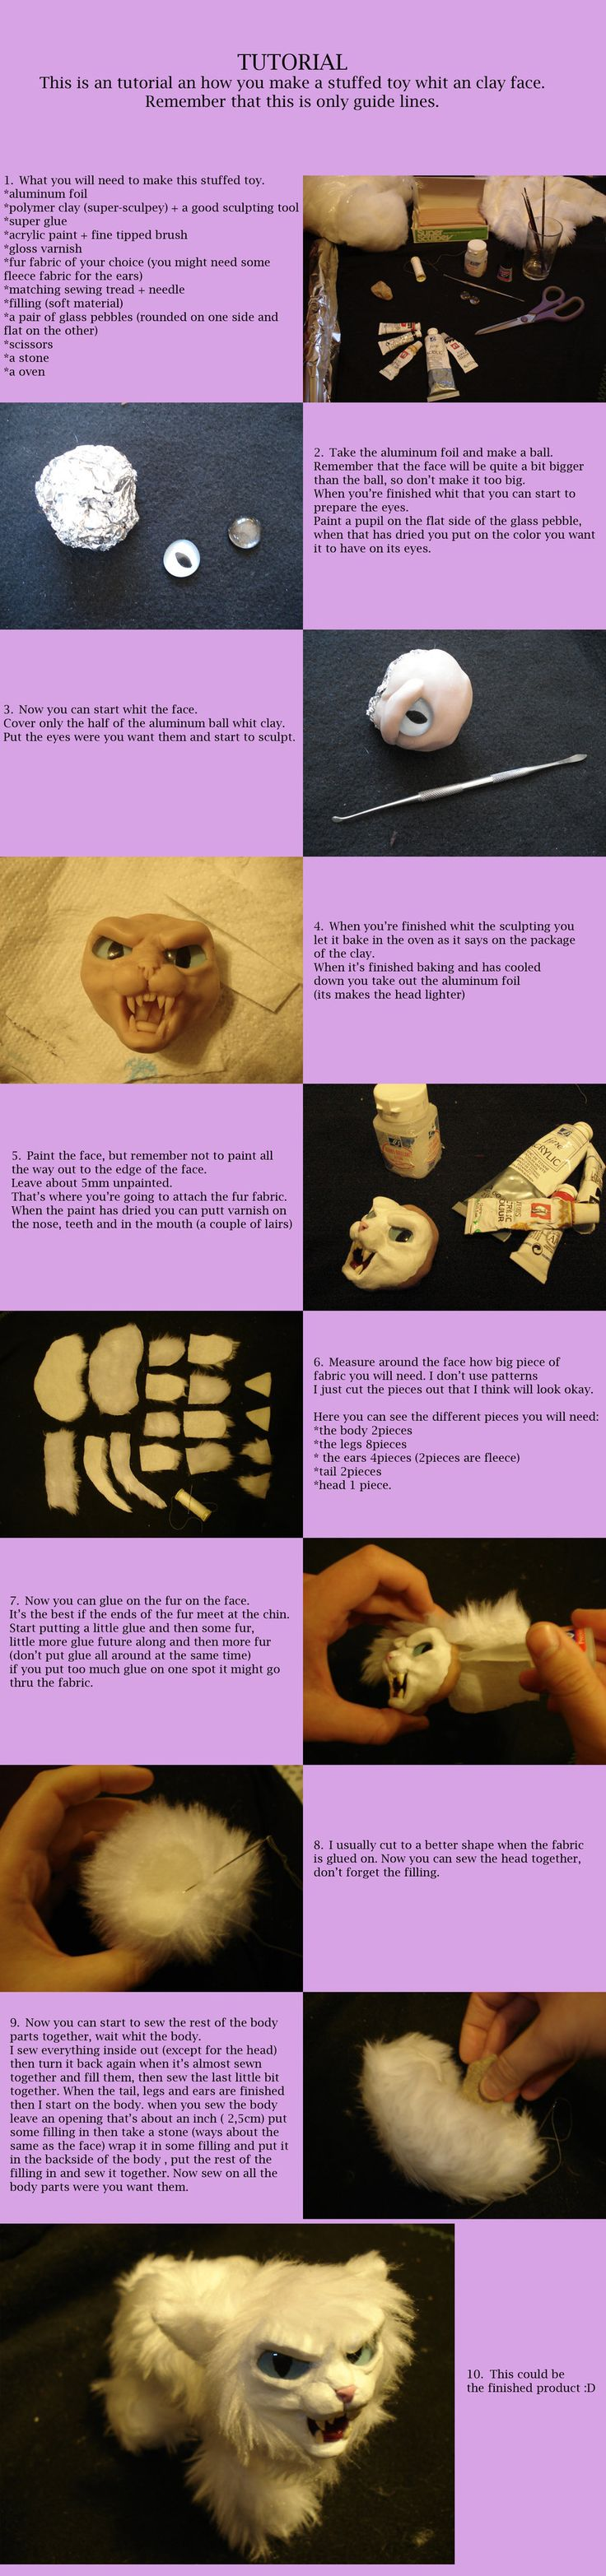 how to make custom animals: Cats Tutorials, Faces Tutorials, Dolls Tutorials, Soft Dolls, Clay Faces, Animal Dolls, Crafts Tutorials, Halloween Tutorials, Polymer Clay